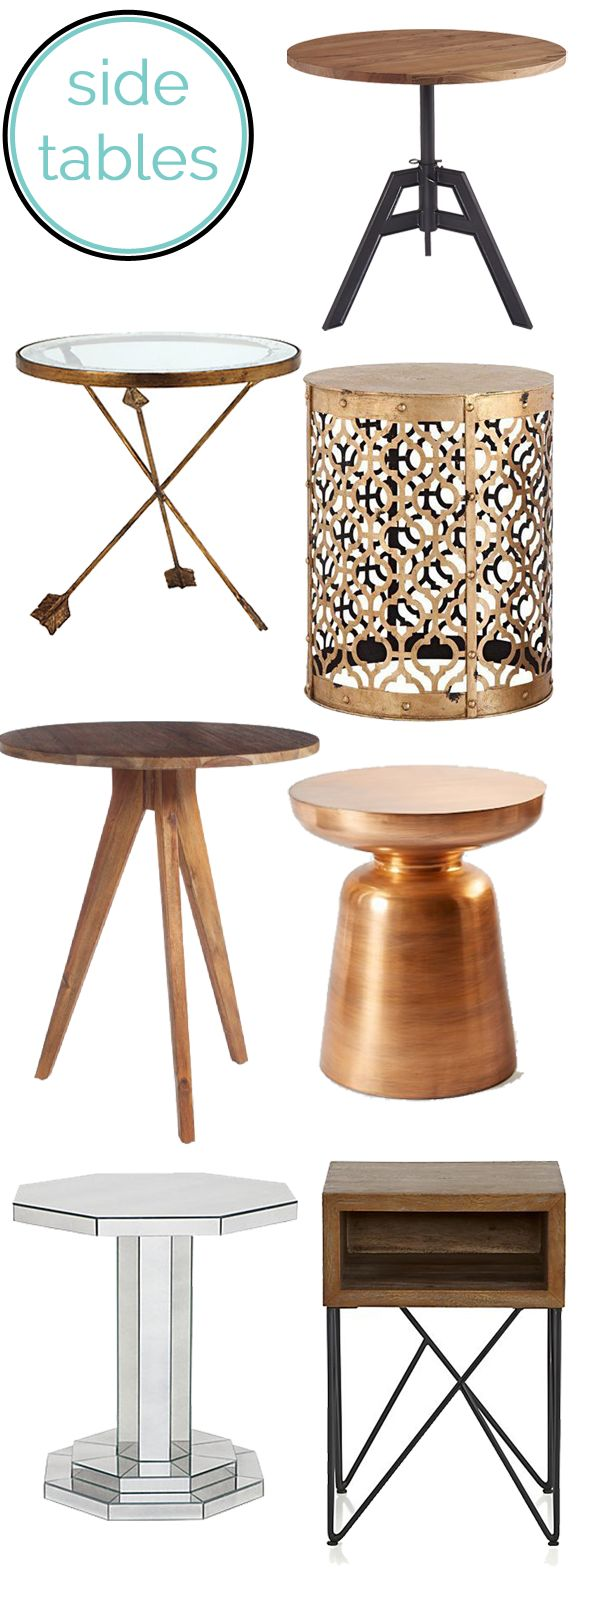 A roundup of some of My Style Vita's favorite side tables for your living room.